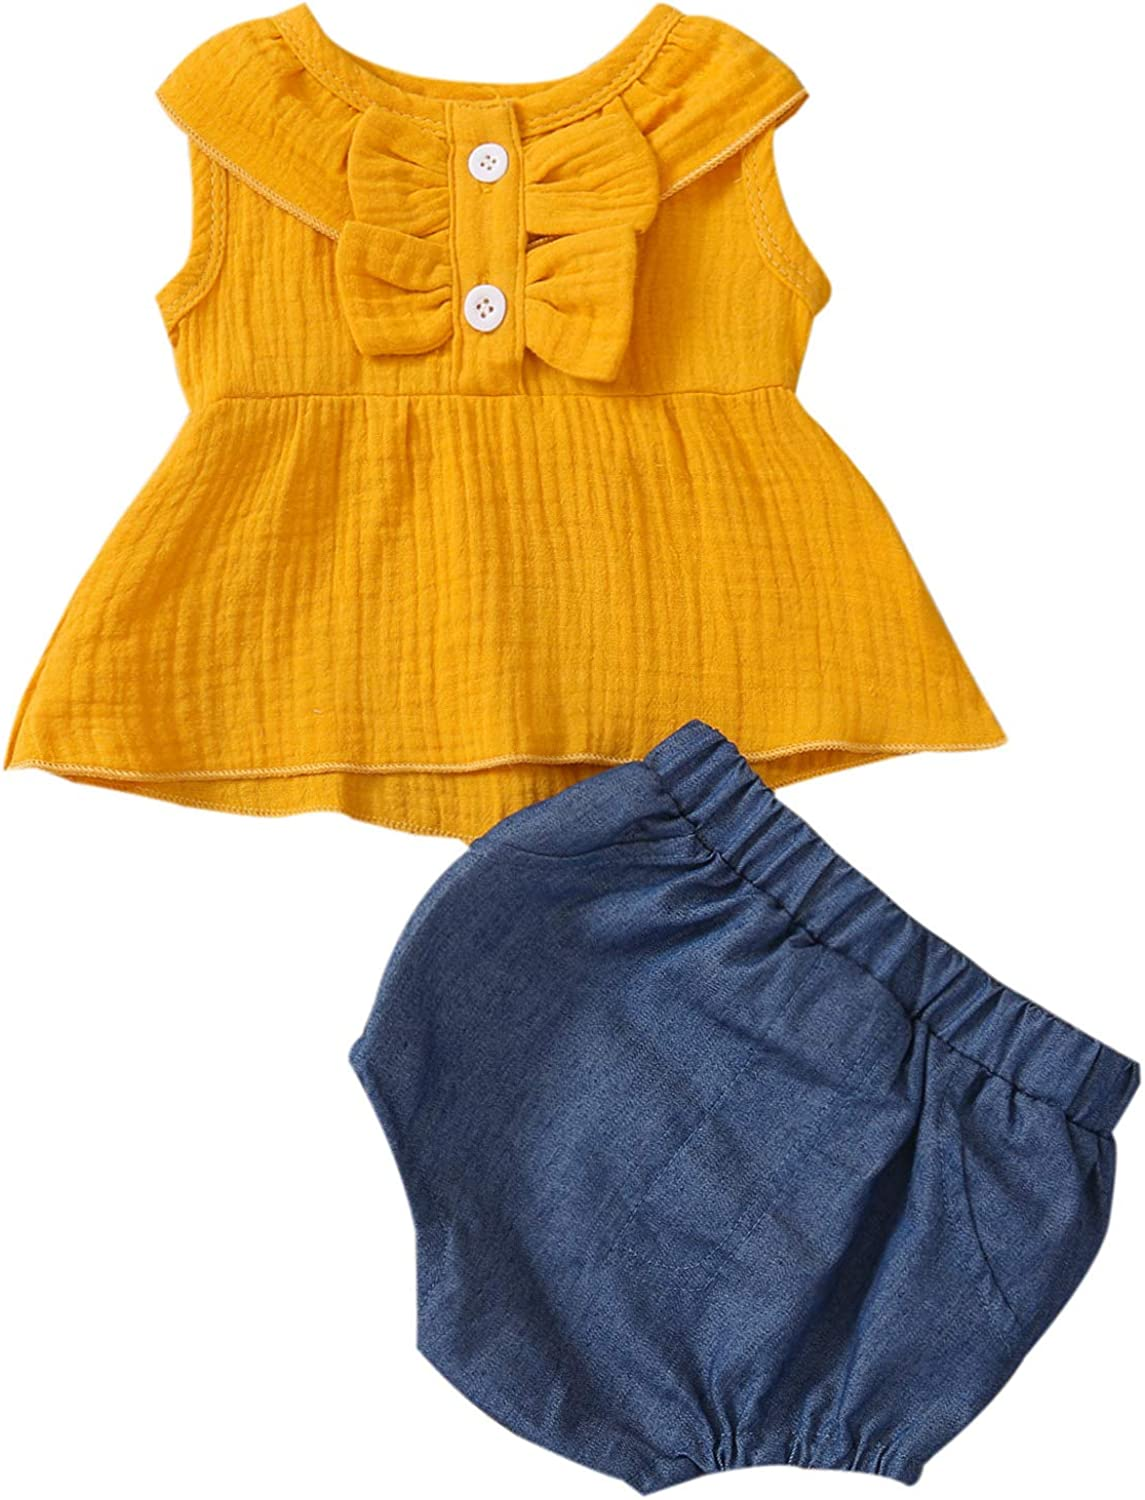 Baby Infant Girl Clothes Sleeveless Tank Top with Denim Shorts Summer Outfits 0-18 Months 6-12 Months